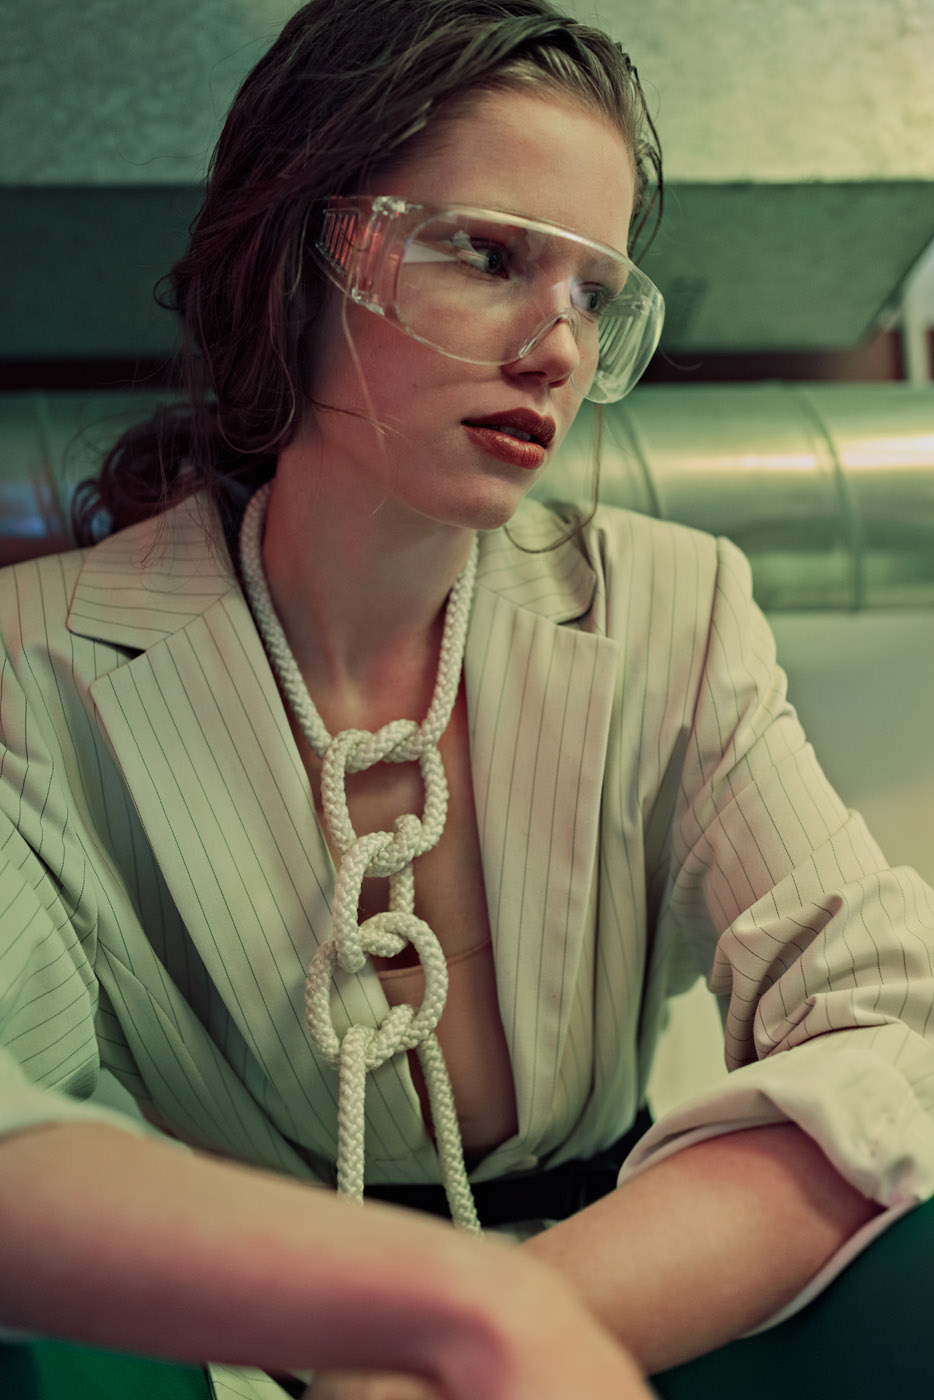 LAUNDRY DAY by Maja Johansson for CHASSEUR MAGAZINE